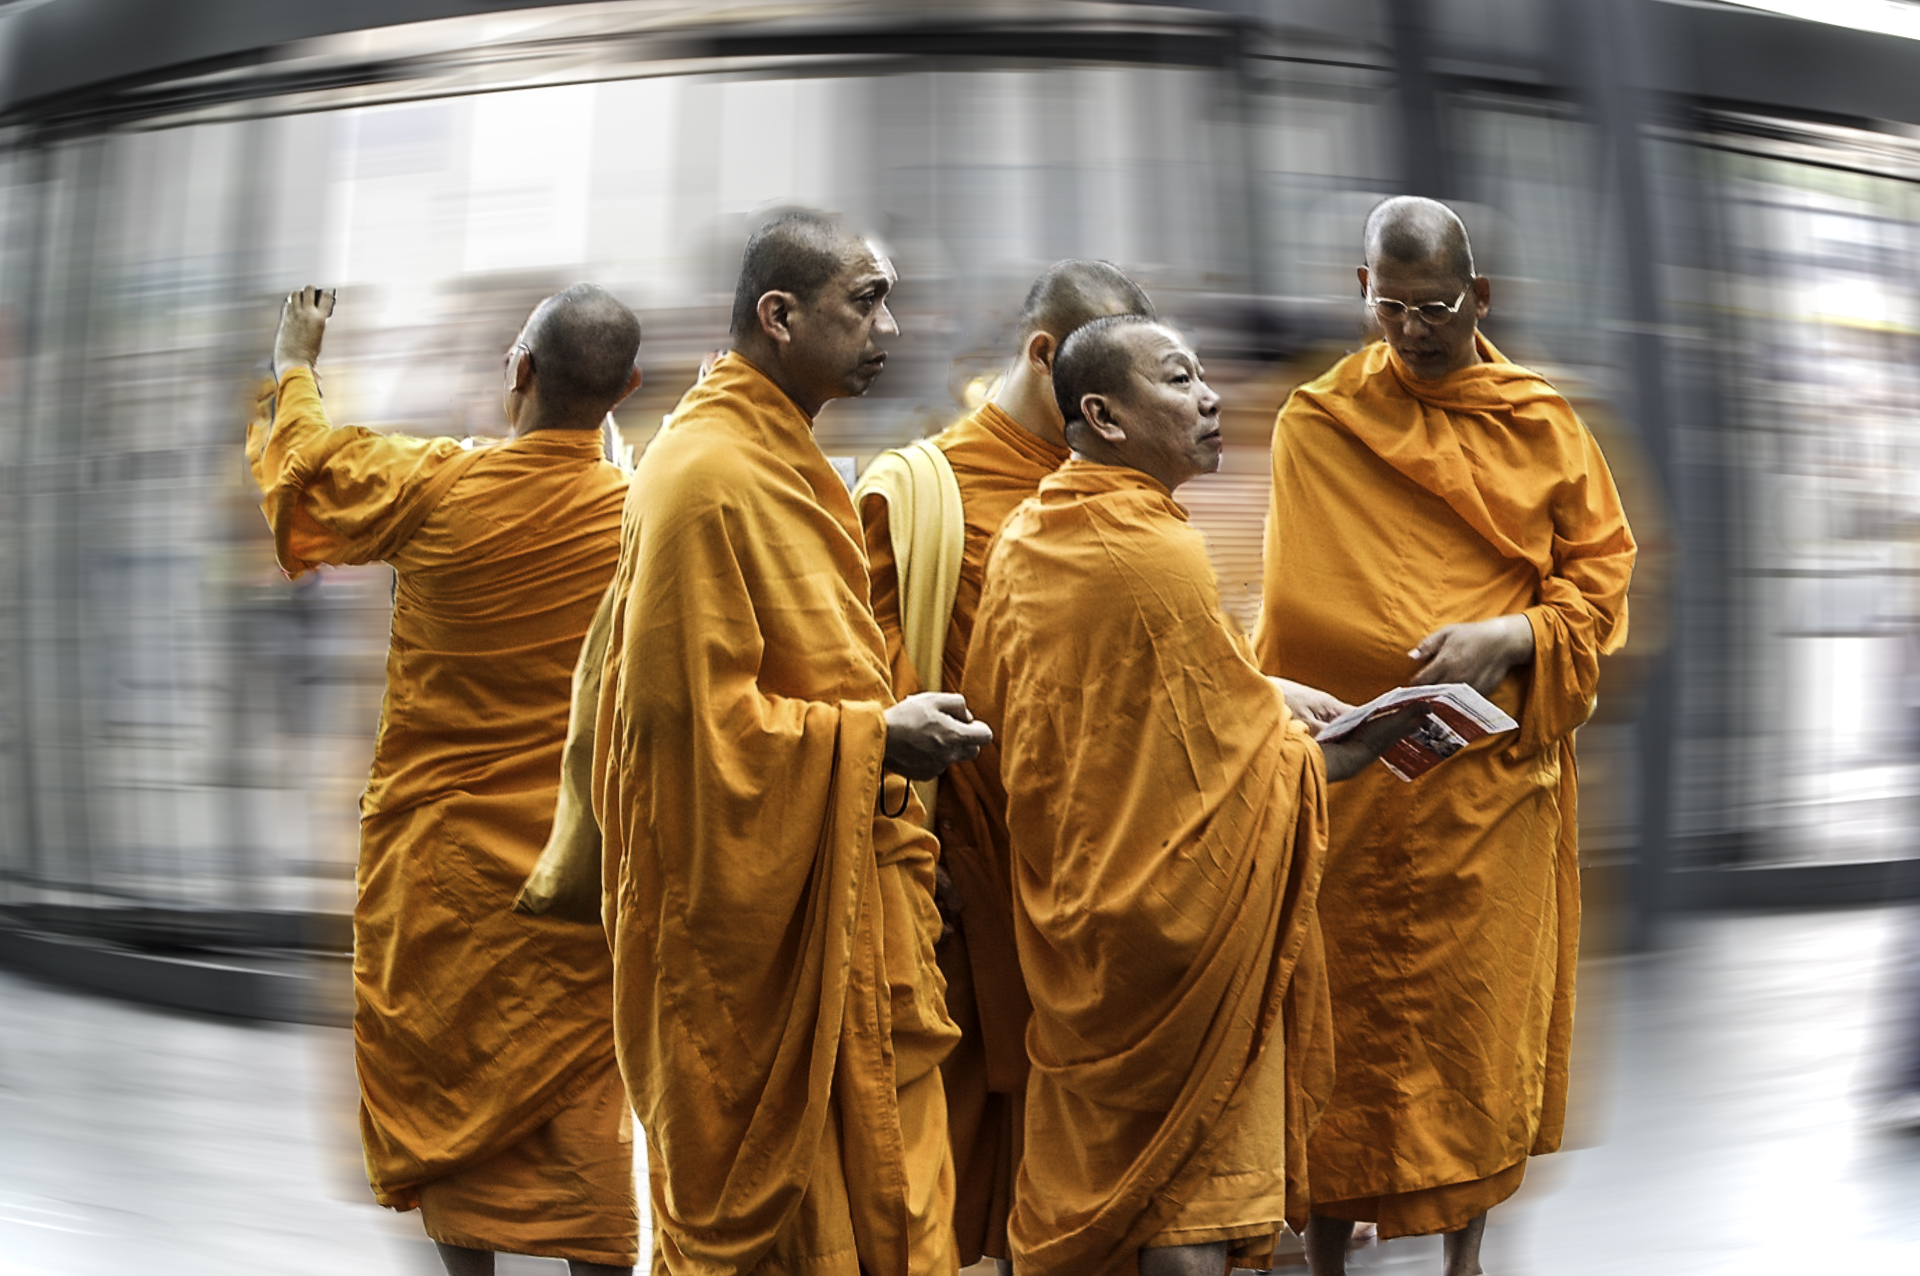 Monks by Bransha Gautier